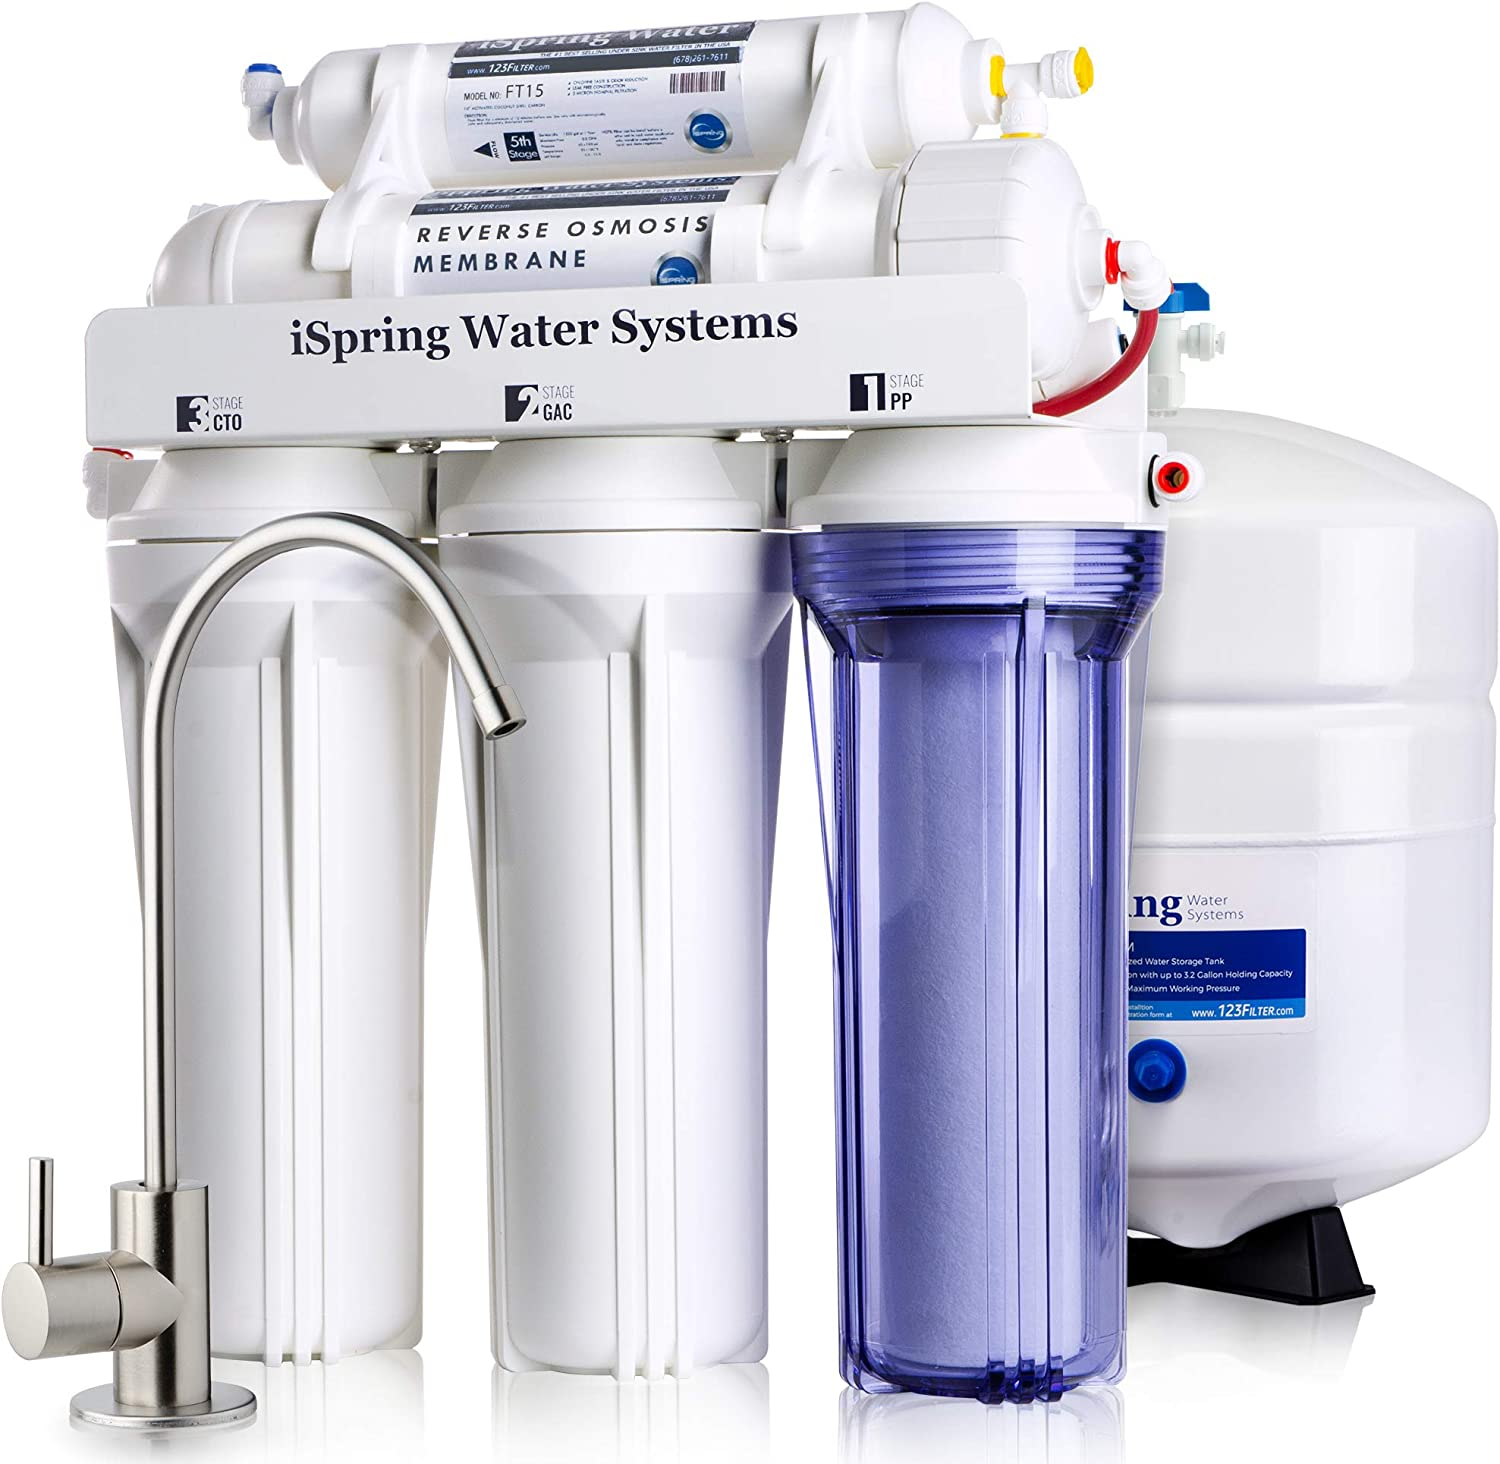 iSpring RCC7 High Capacity Under Sink 5-Stage Reverse Osmosis Drinking Filtration System and Ultimate Water Softener, 75 GPD, Brushed Nickel Faucet - Undersink Water Filtration Systems - .com